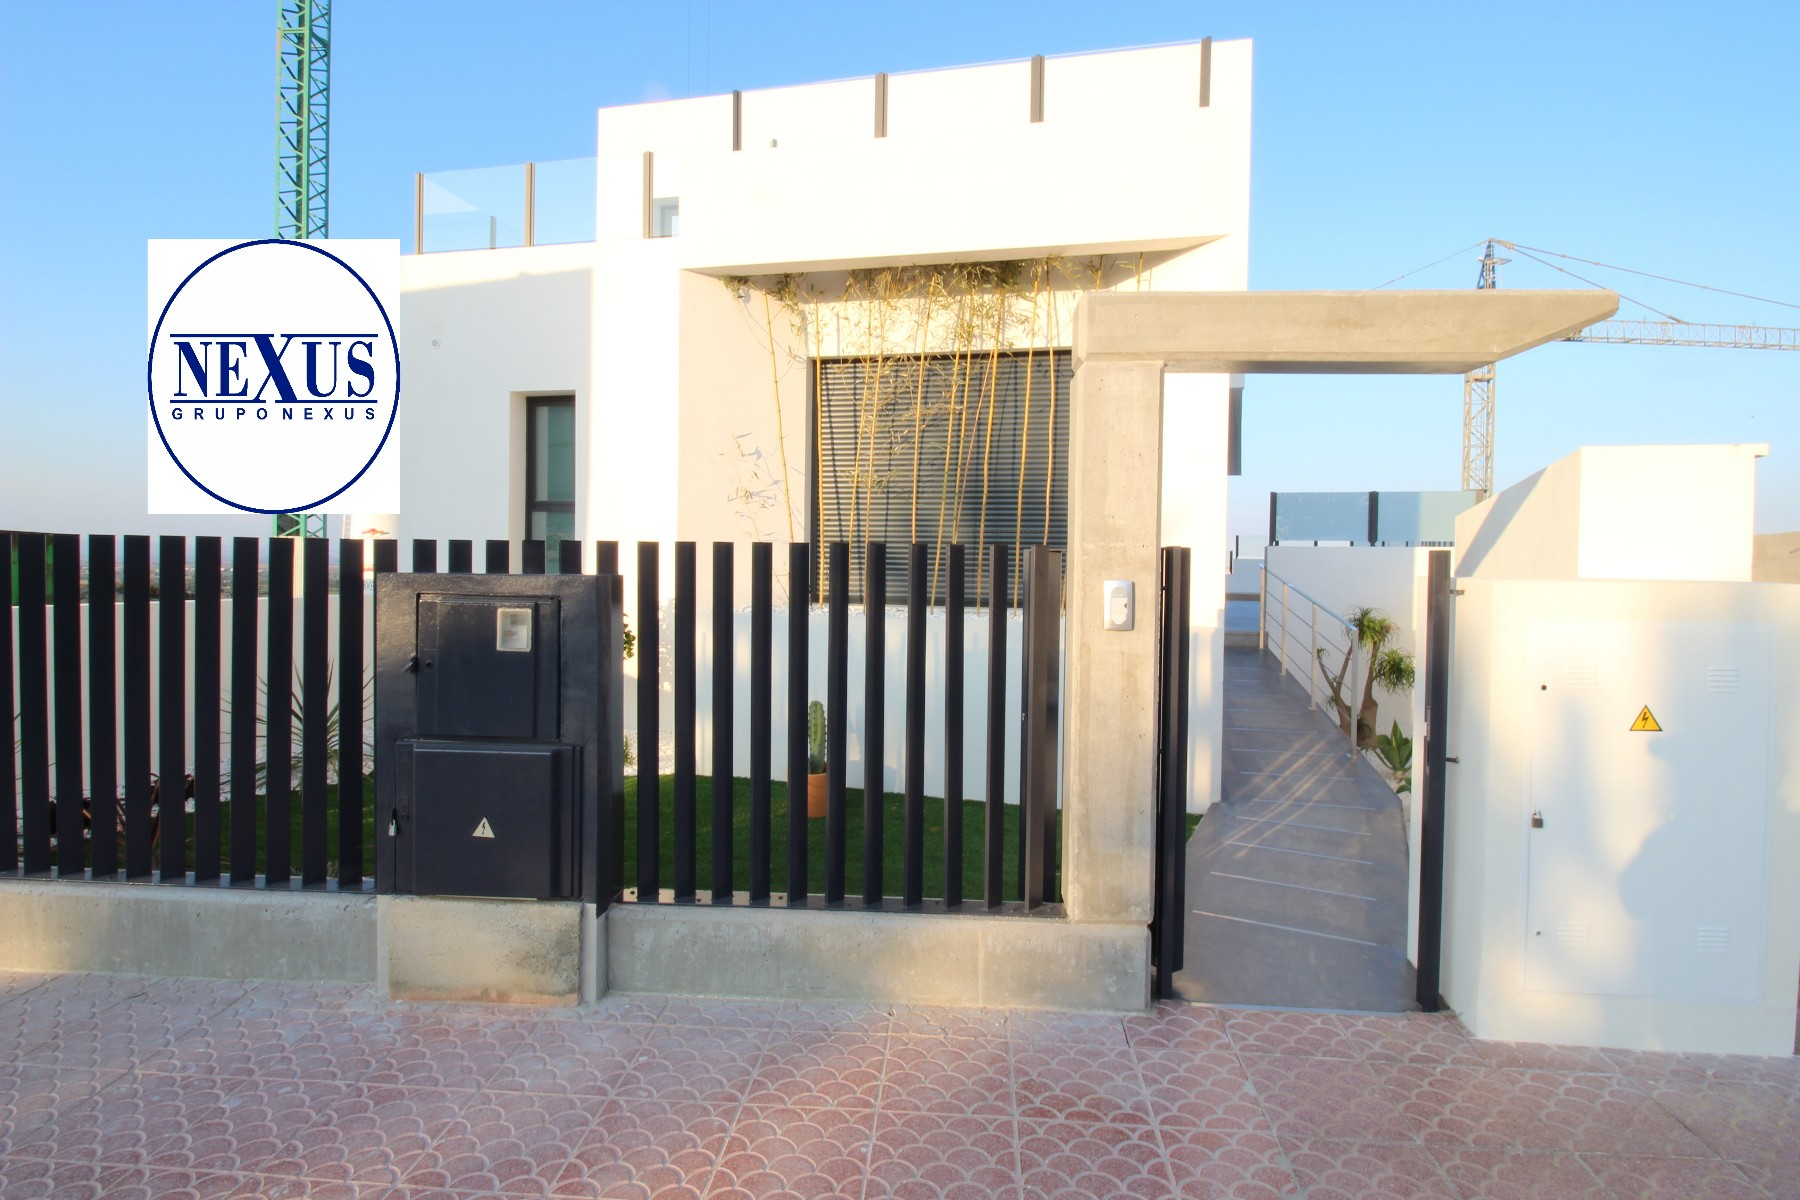 ​Real Estate Group Nexus, Sells Luxury Villa, in Nexus Grupo